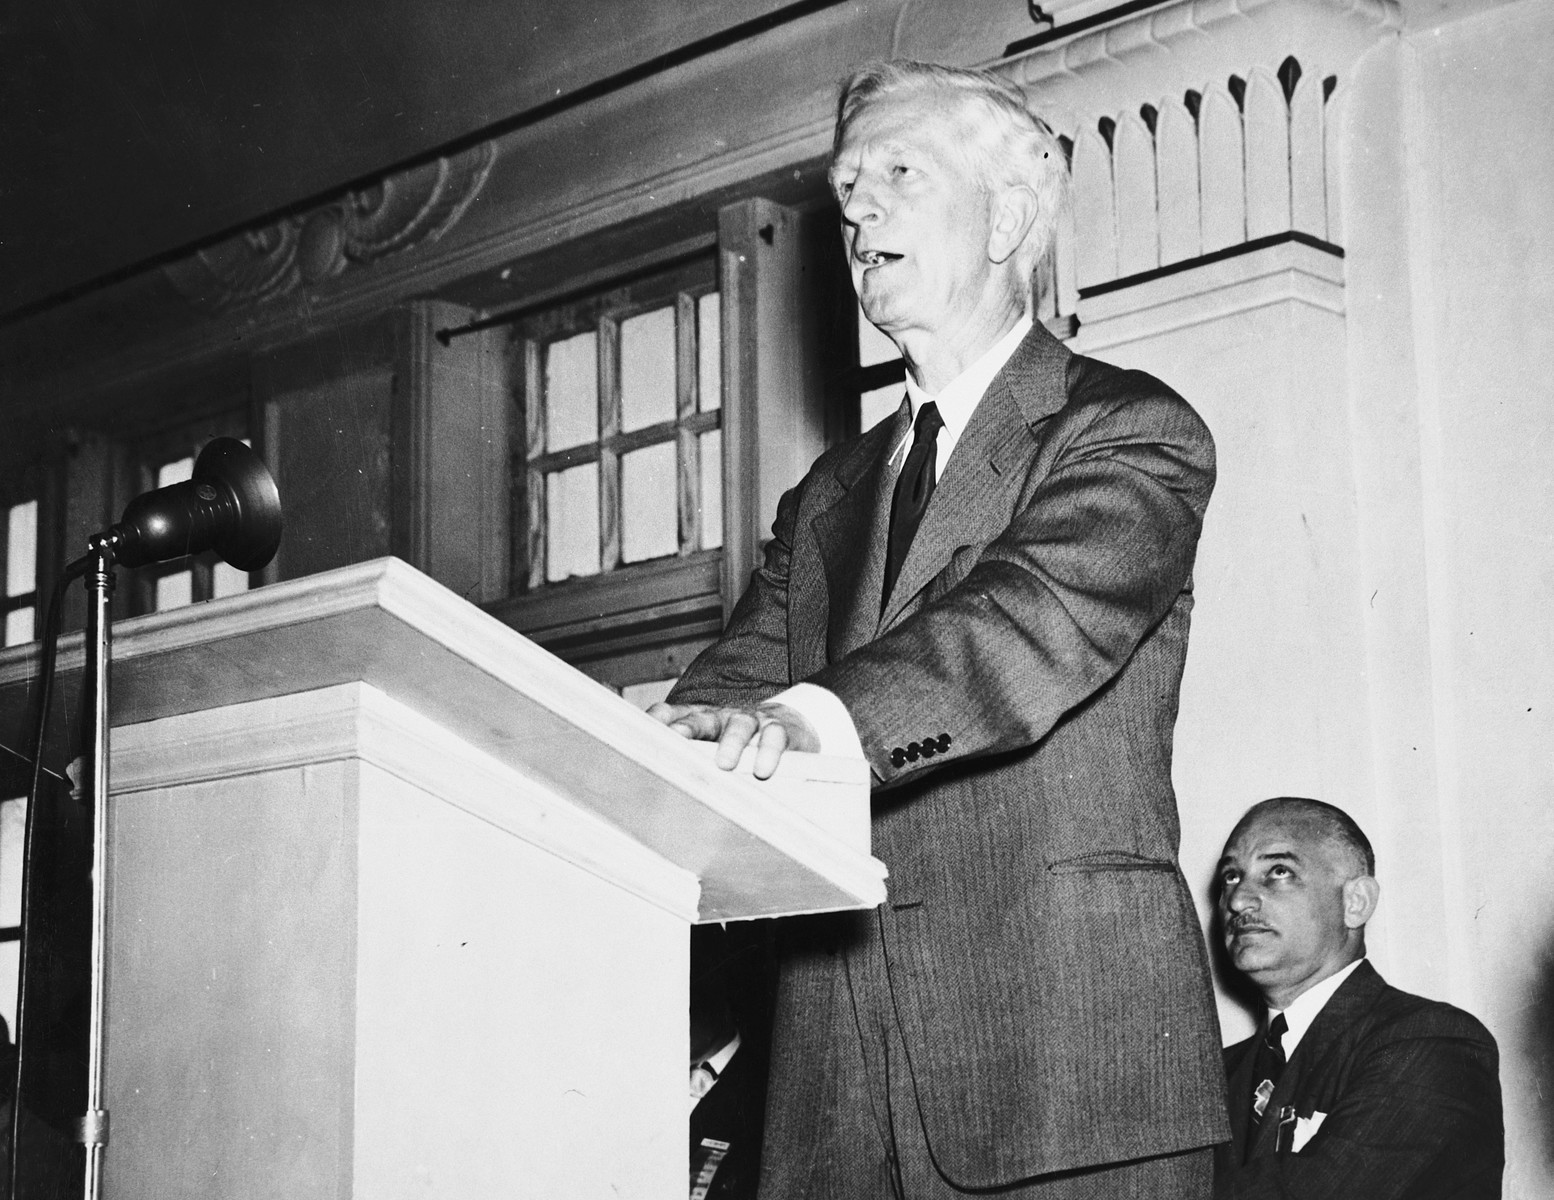 James G. McDonald delivers an address in Atlantic City, New Jersey.